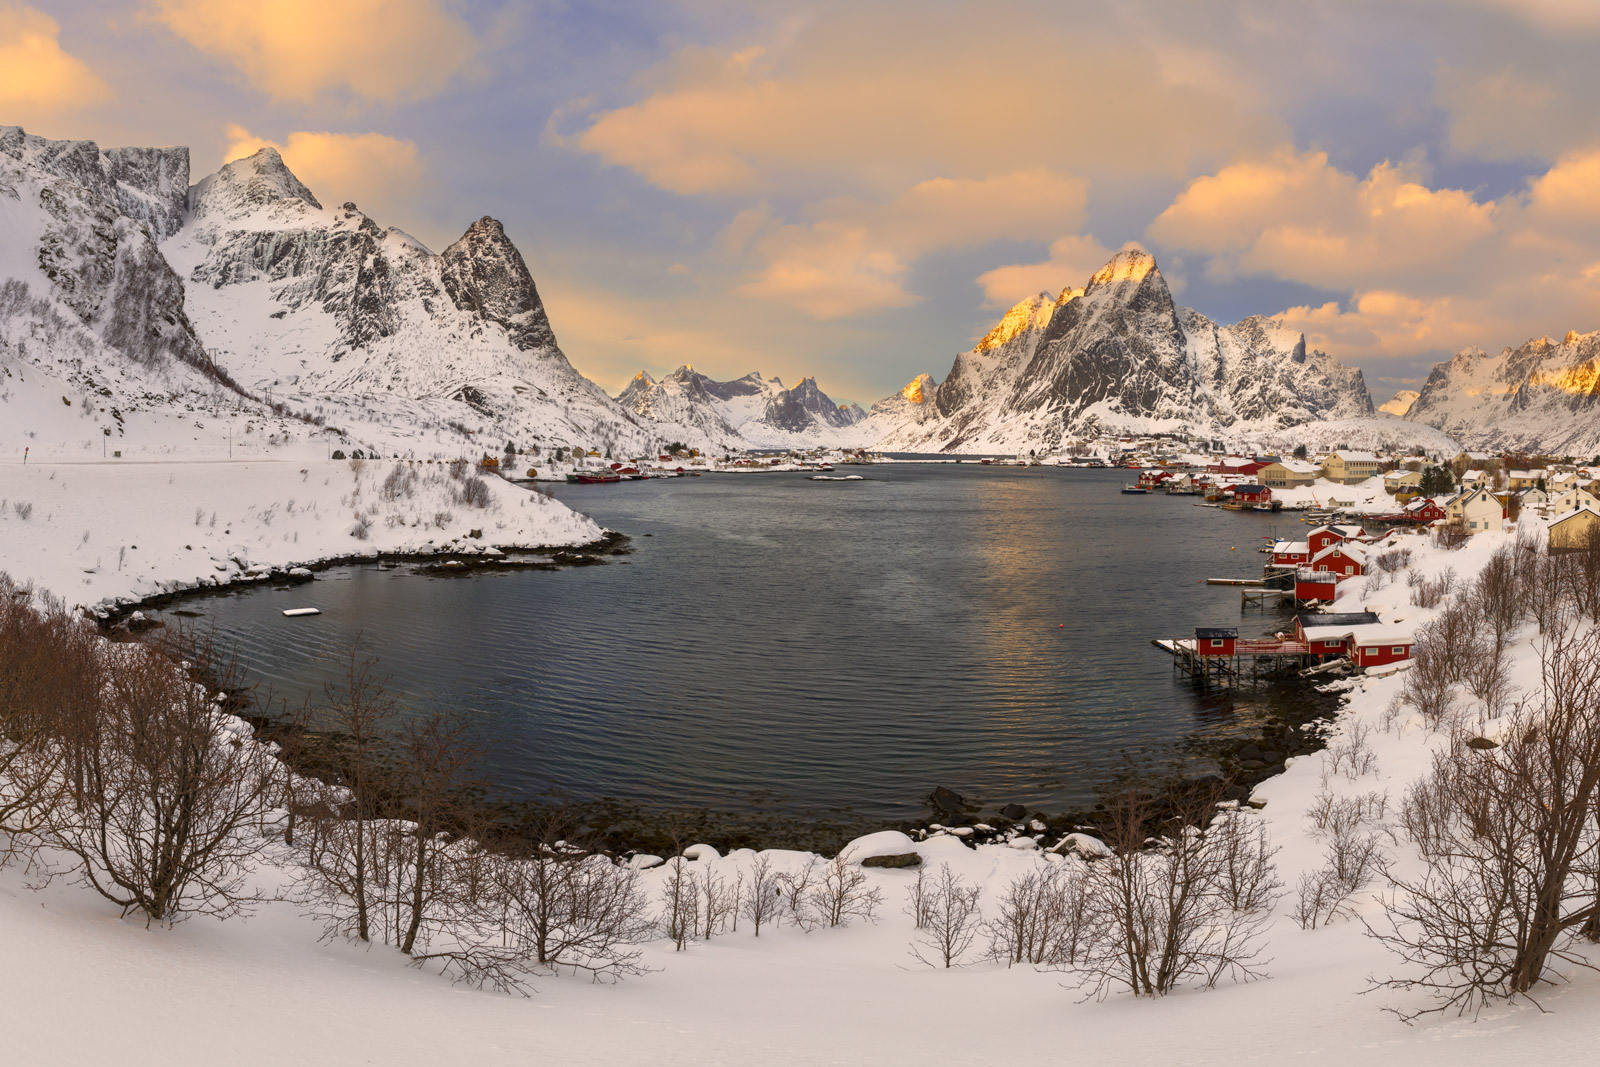 Norway, Lofoten, Reine, Morning, Snowfall, limited edition, photograph, fine art, landscape, photo